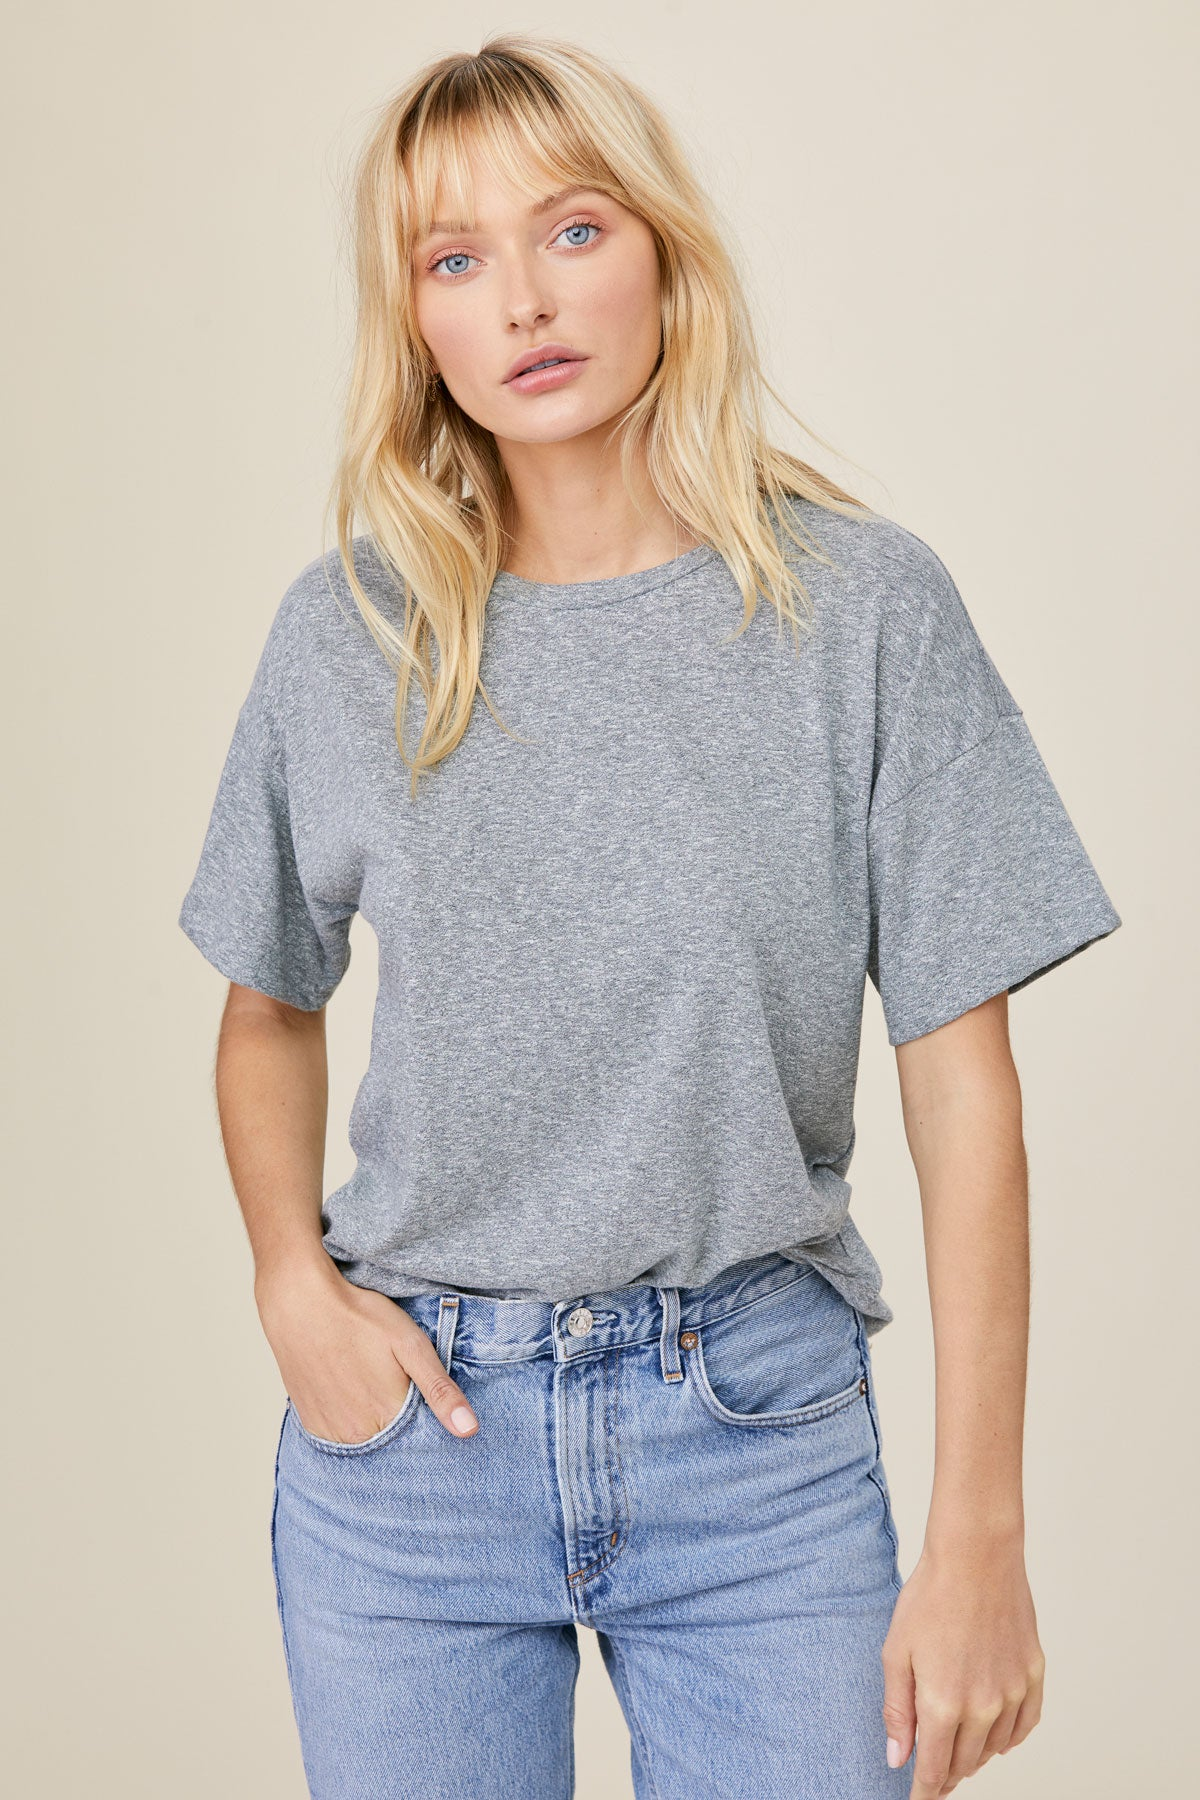 LNA Boxy Crew Neck Tee in Heather Grey